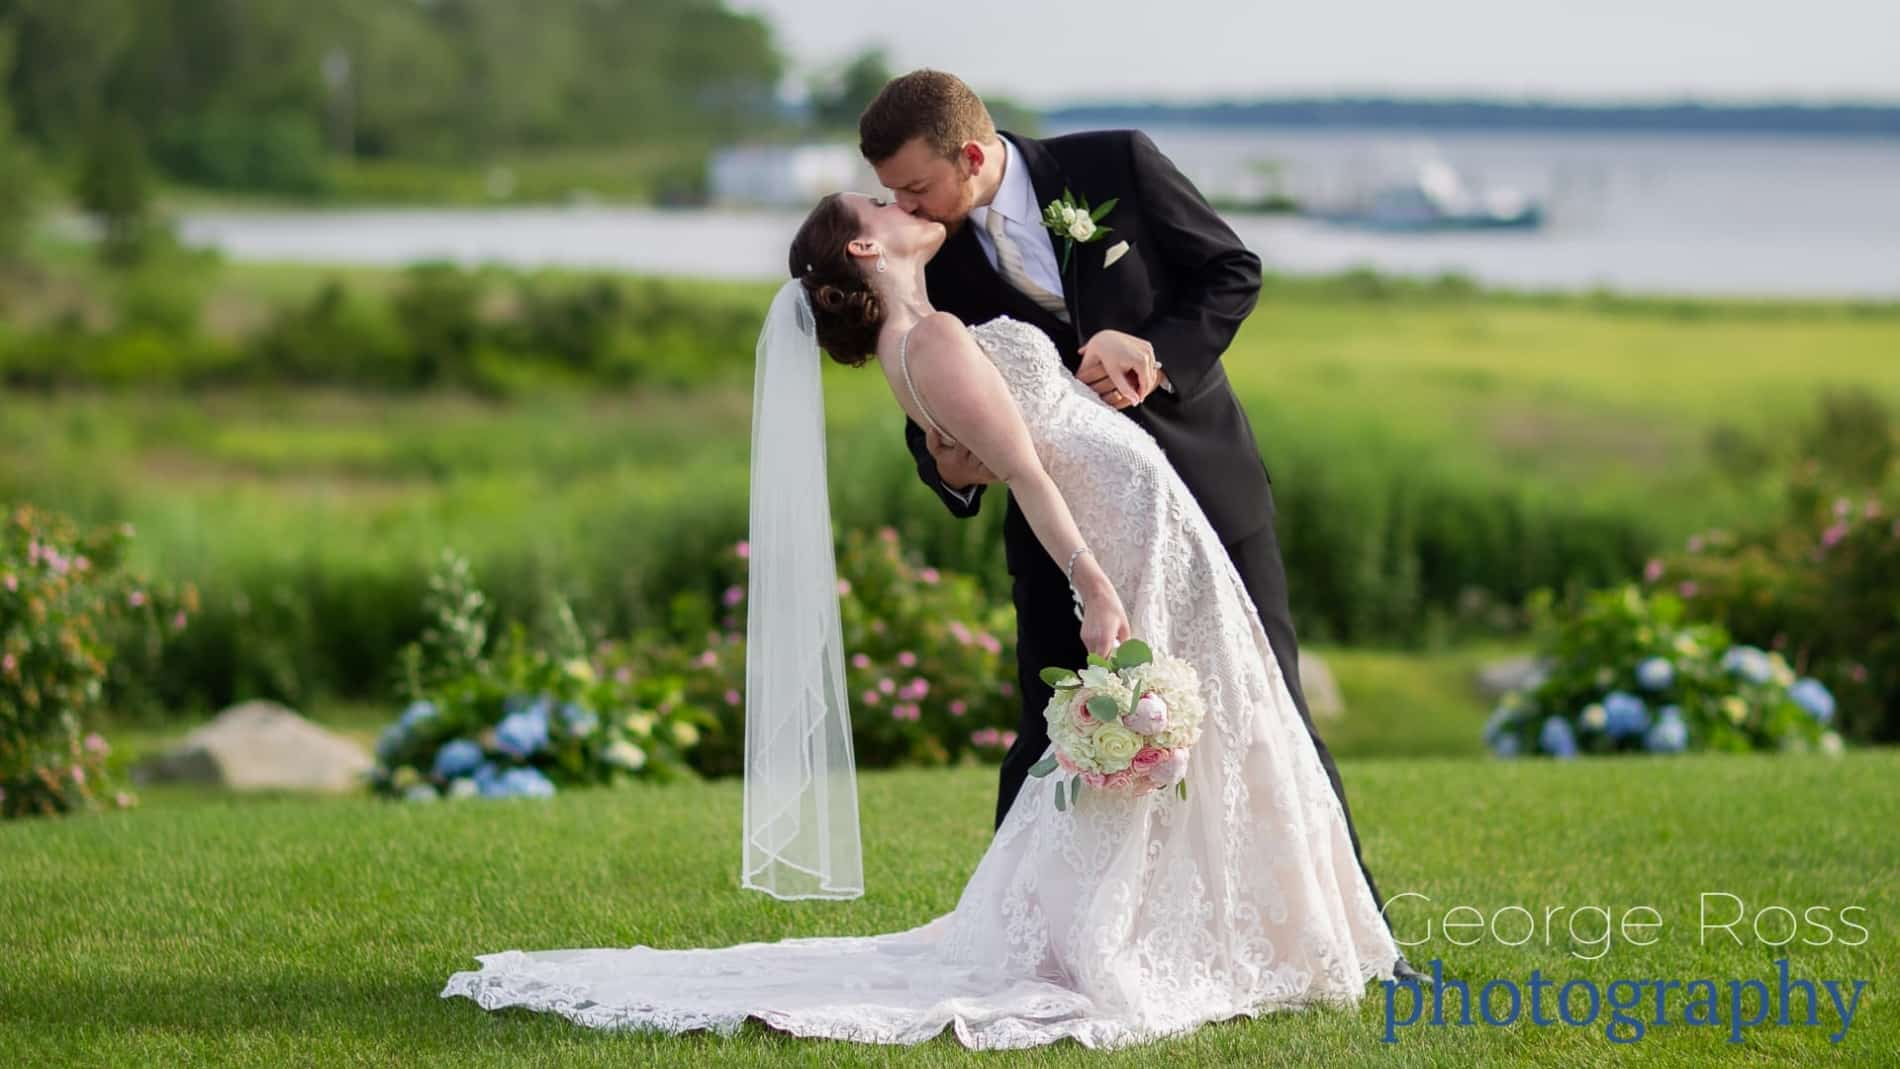 a groom dipping his new wife during the wedding portrait shoot shortly after the wedding ceremony by Rhode Island Wedding Photographer George Ross